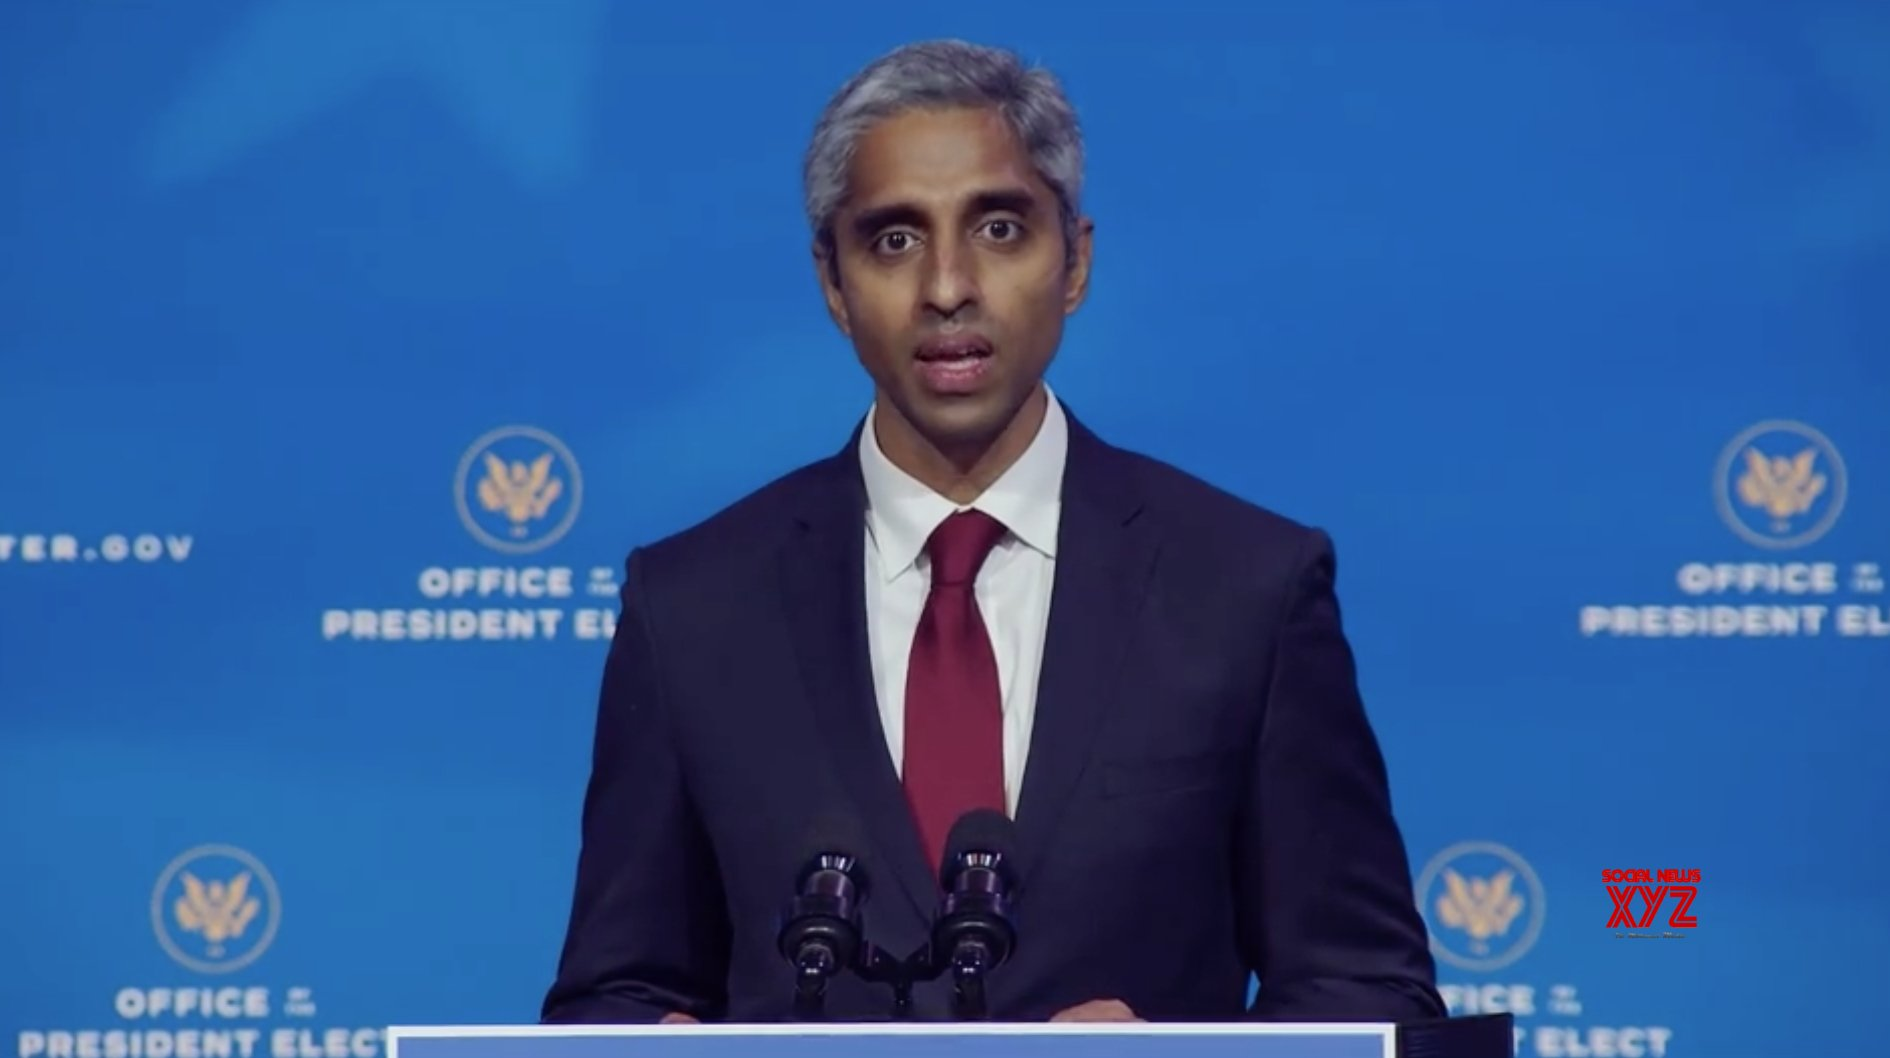 Senate confirms Vivek Murthy as US Surgeon General